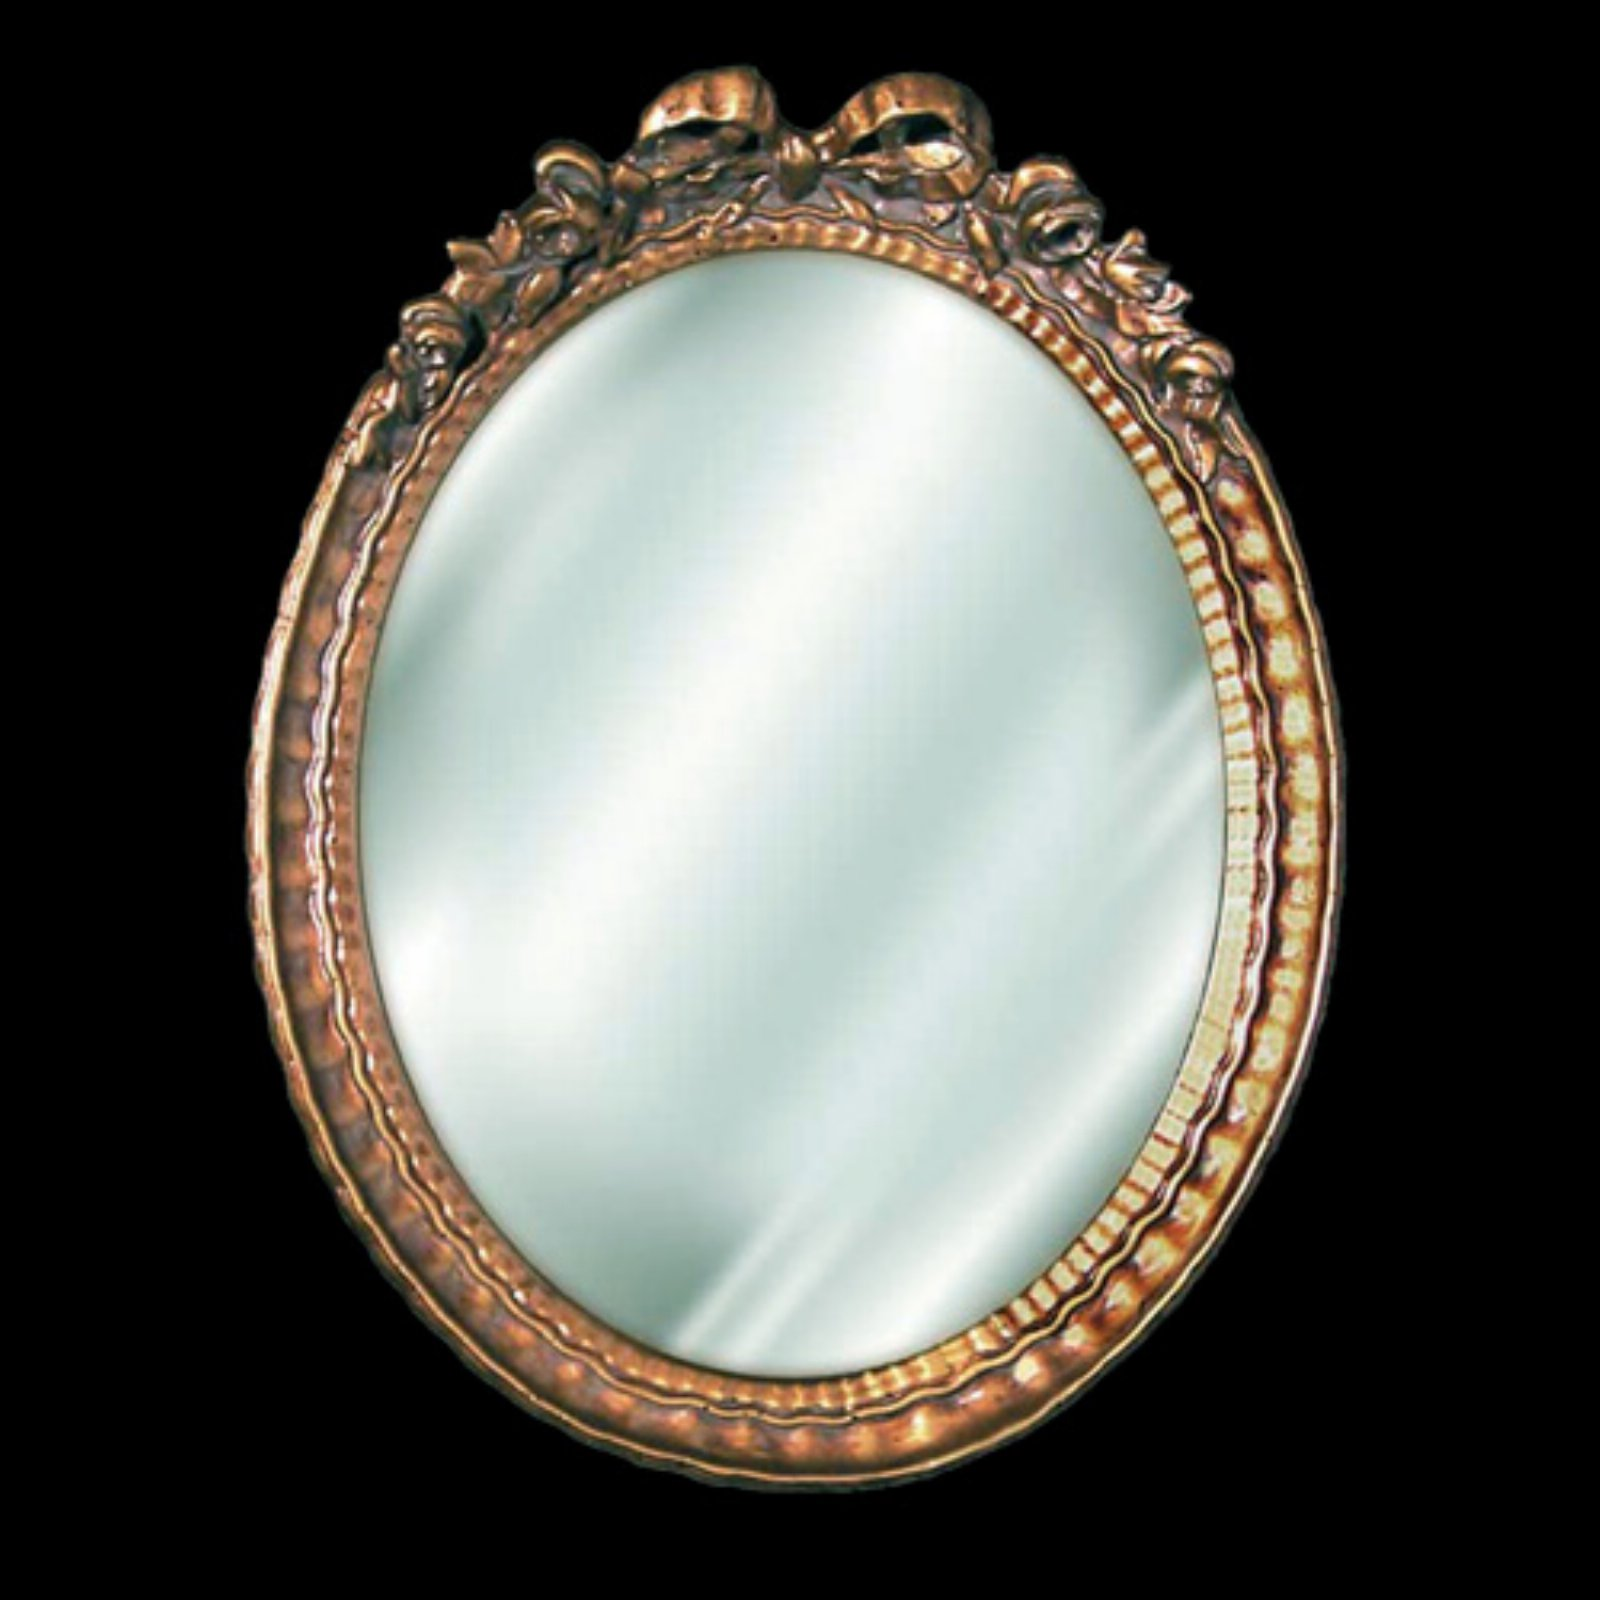 Hickory Manor House Small Oval Bow Mirror - 9.5W x 12H in.